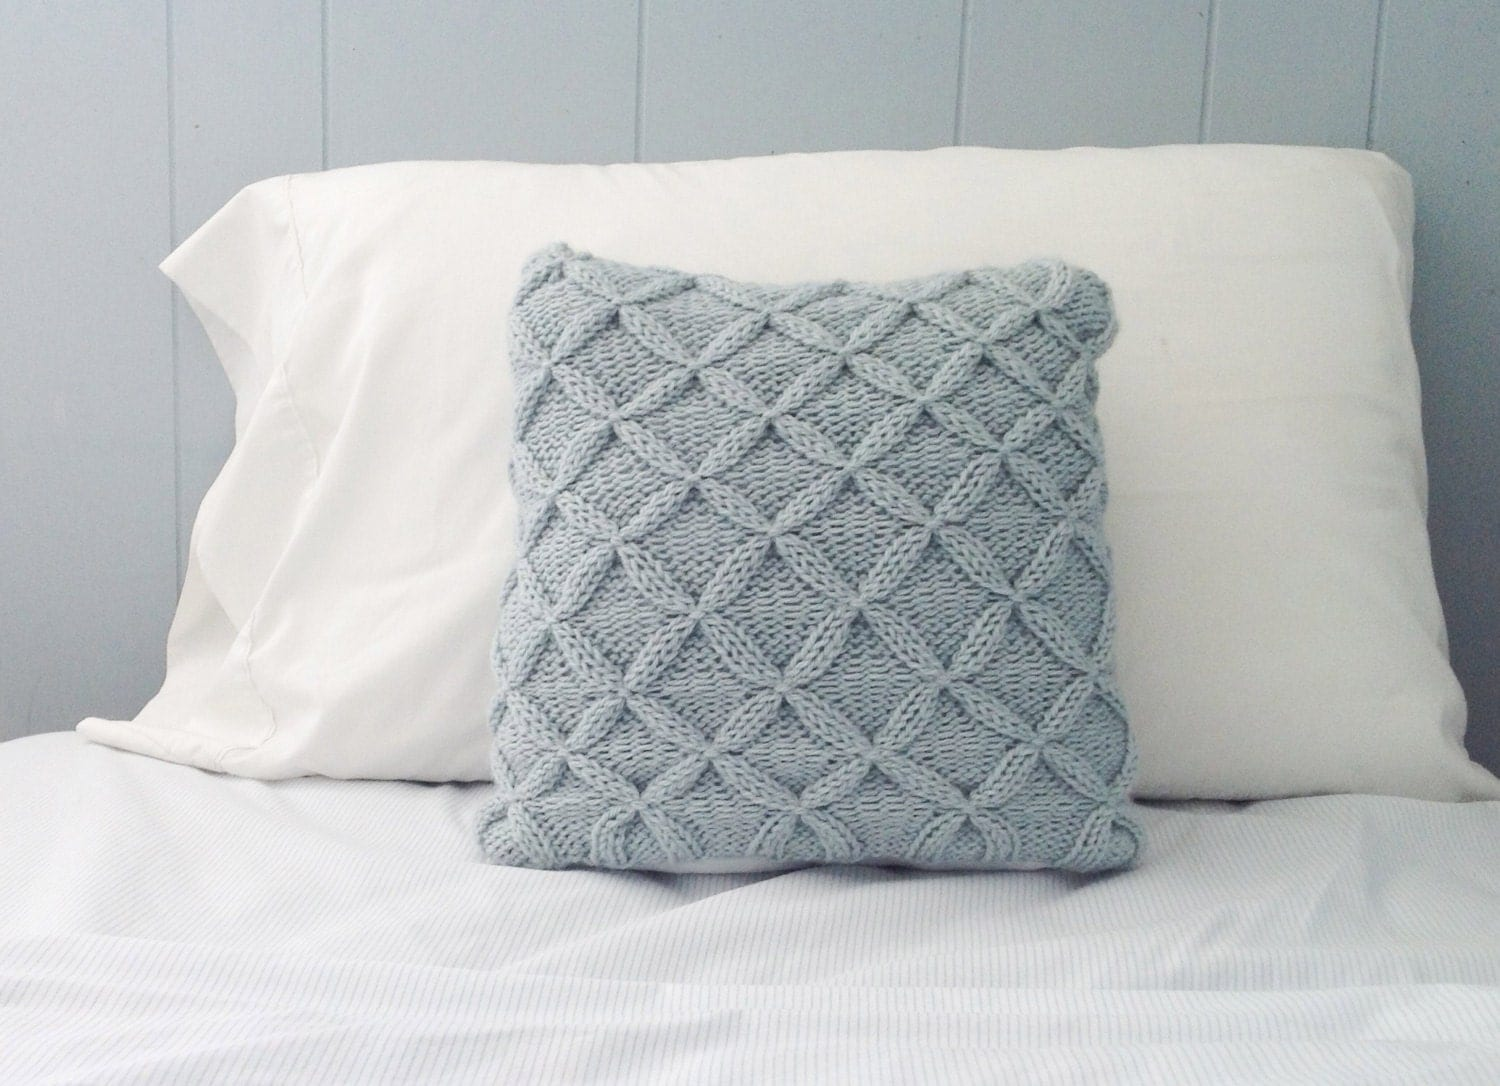 Modern Knitted Pillow : Cathedral Cable Knit Pillow Sham New Knitted by PreciousKnits